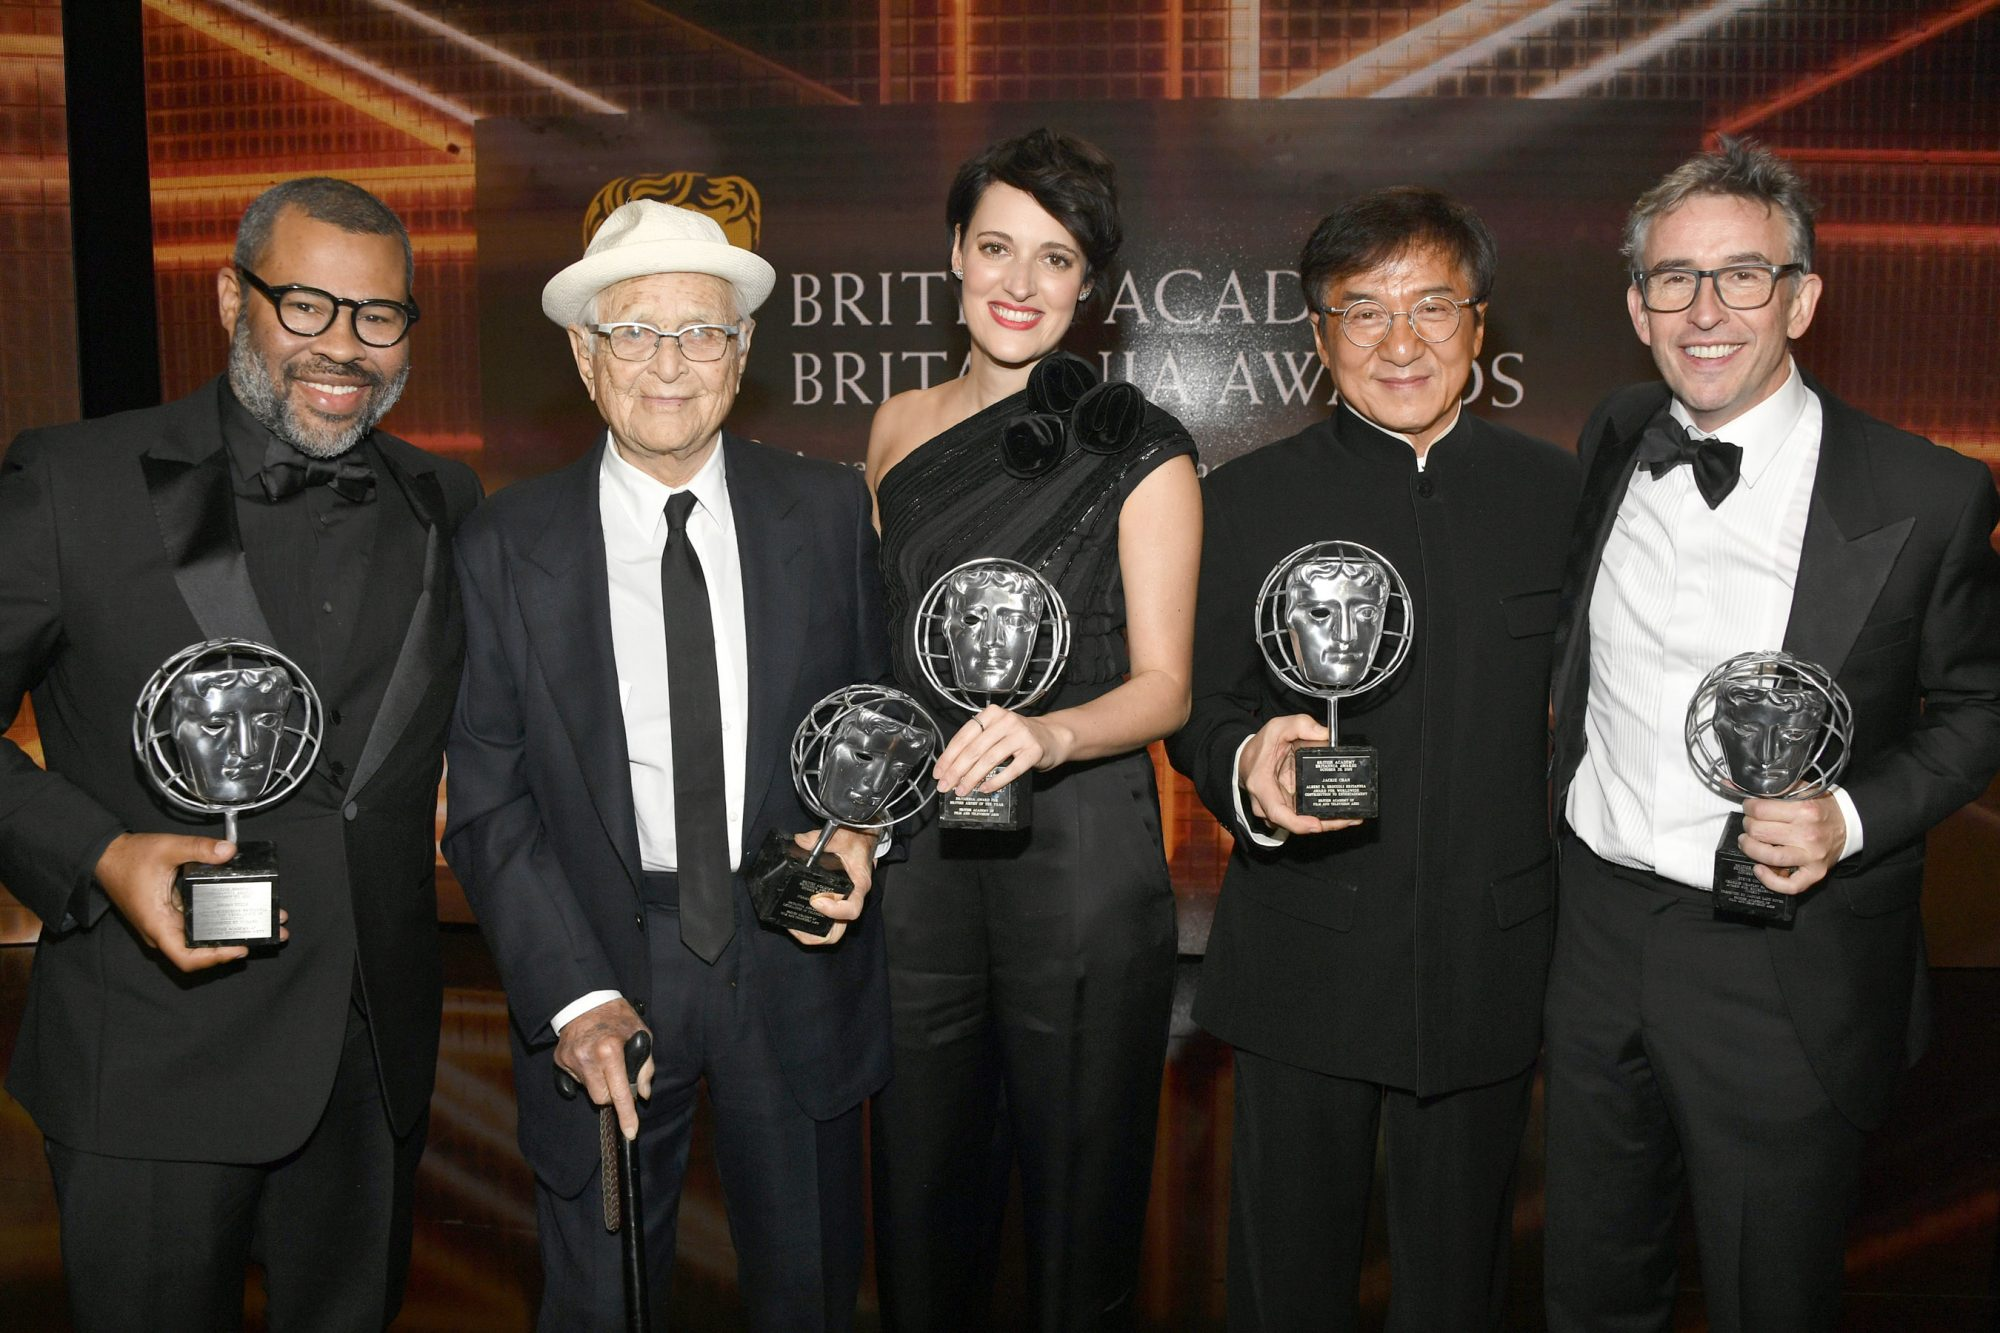 2019 British Academy Britannia Awards presented by American Airlines and Jaguar Land Rover - Inside